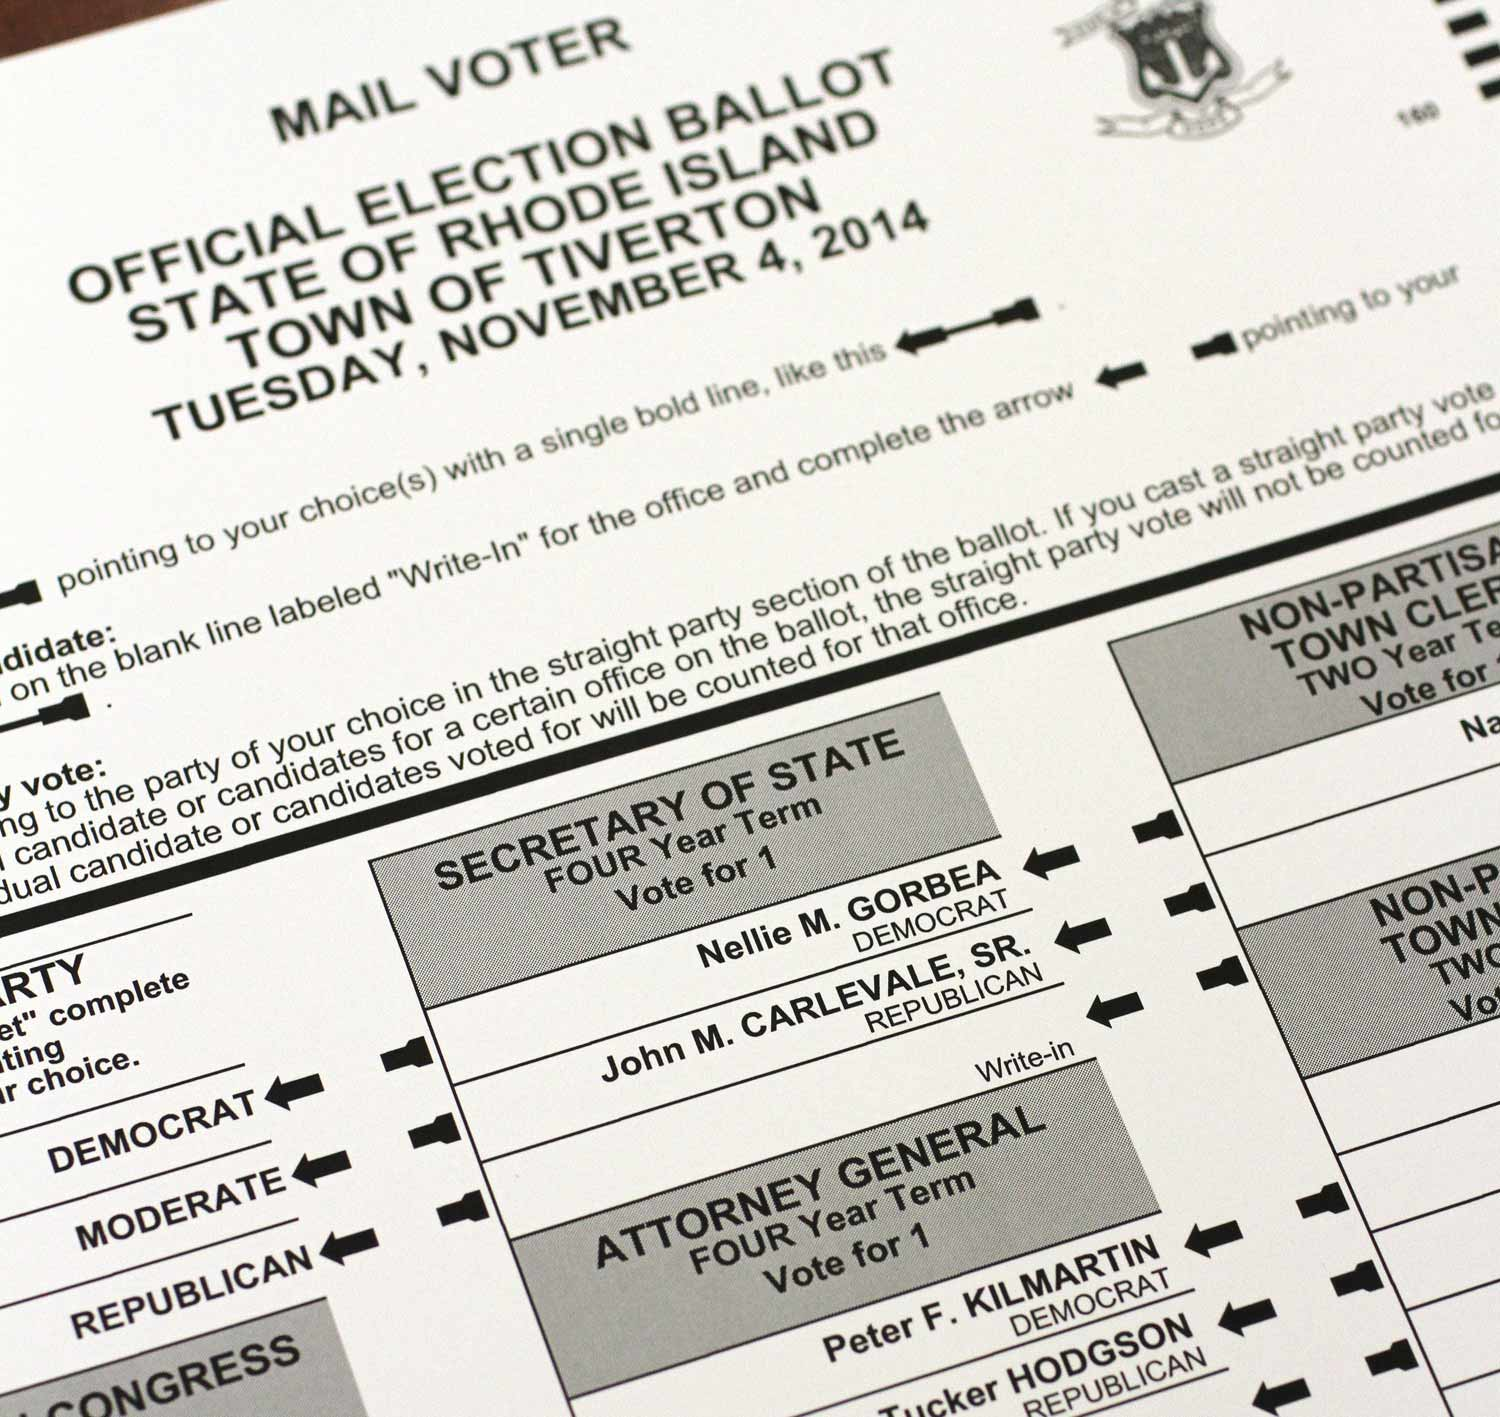 Samples mail ballot for the Nov. 4, 2014 Rhode Island general election